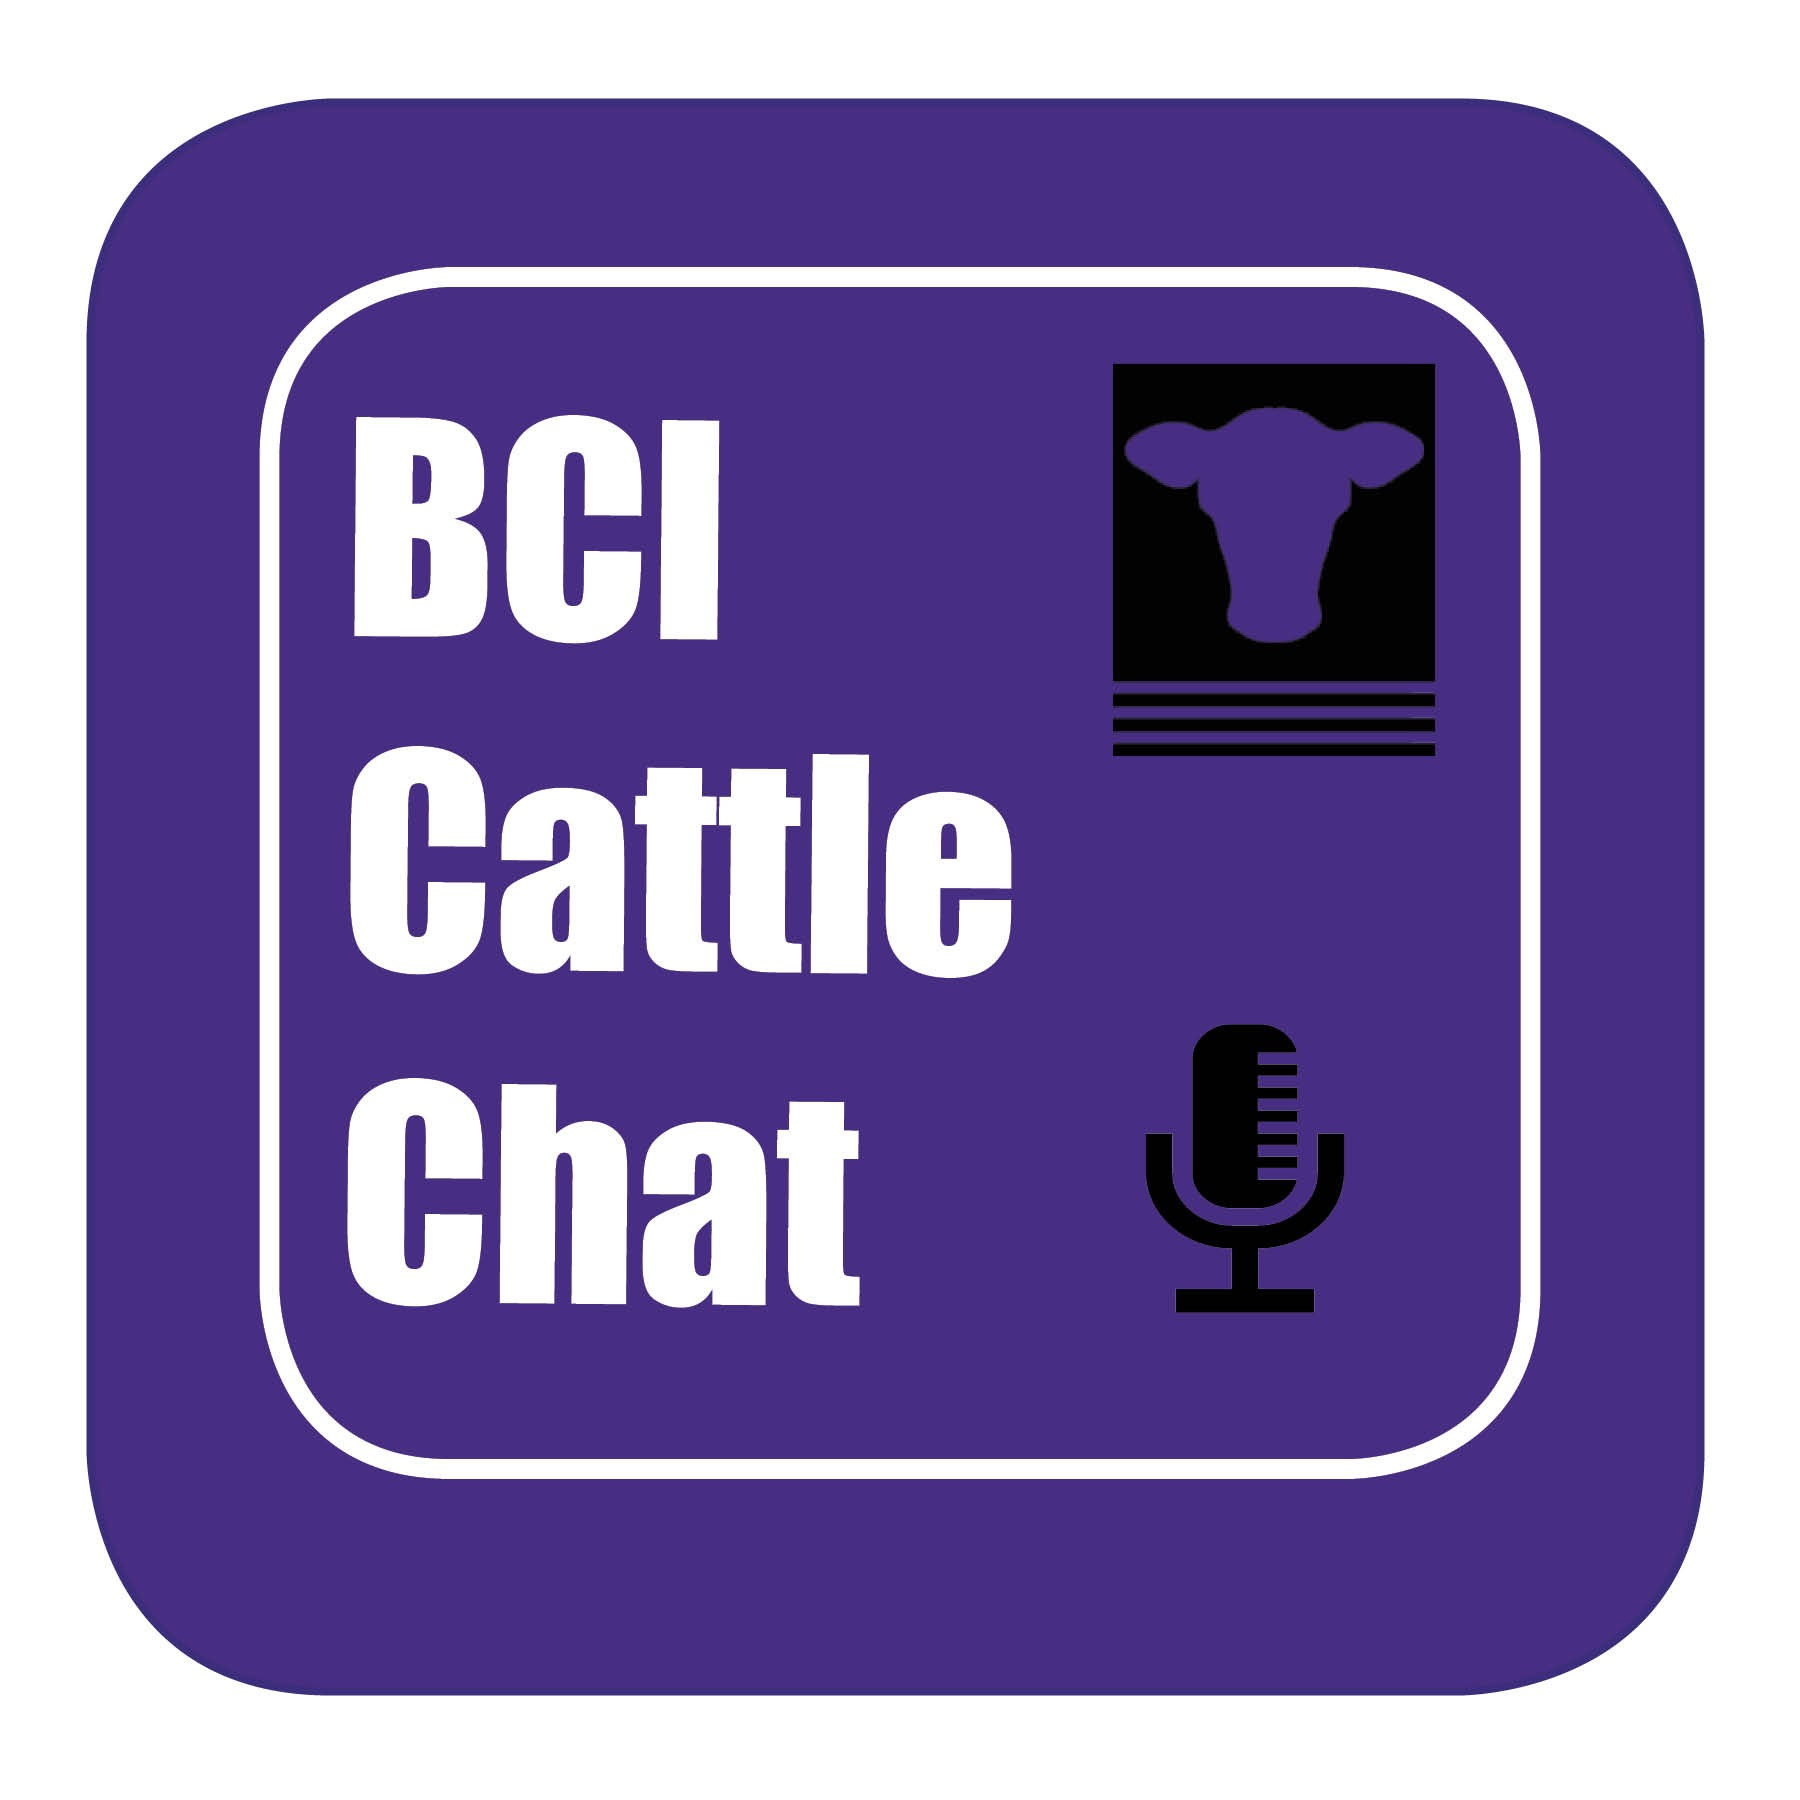 BCI Cattle Chat - Episode 34